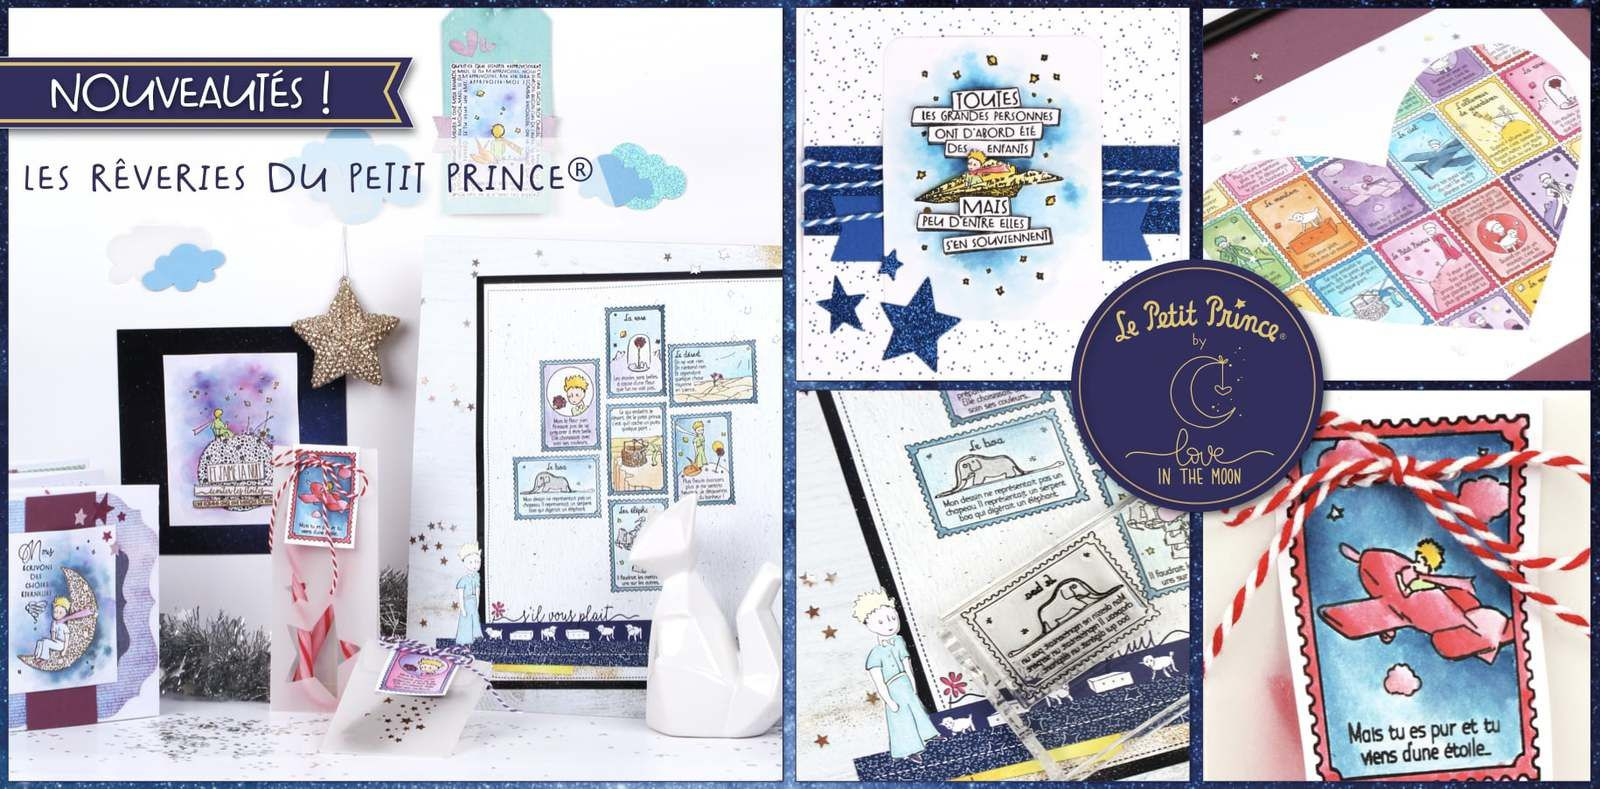 Nouvelle collection chez SCRAP PLAISIR ♡ LOVE IN THE MOON - LE PETIT PRINCE ♡